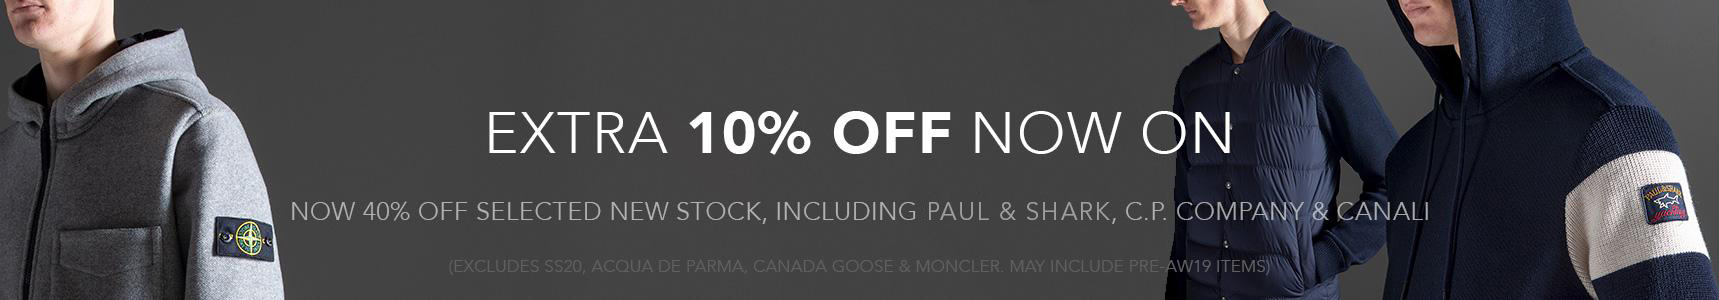 Extra 10% Off - Now 40% Off New Stock